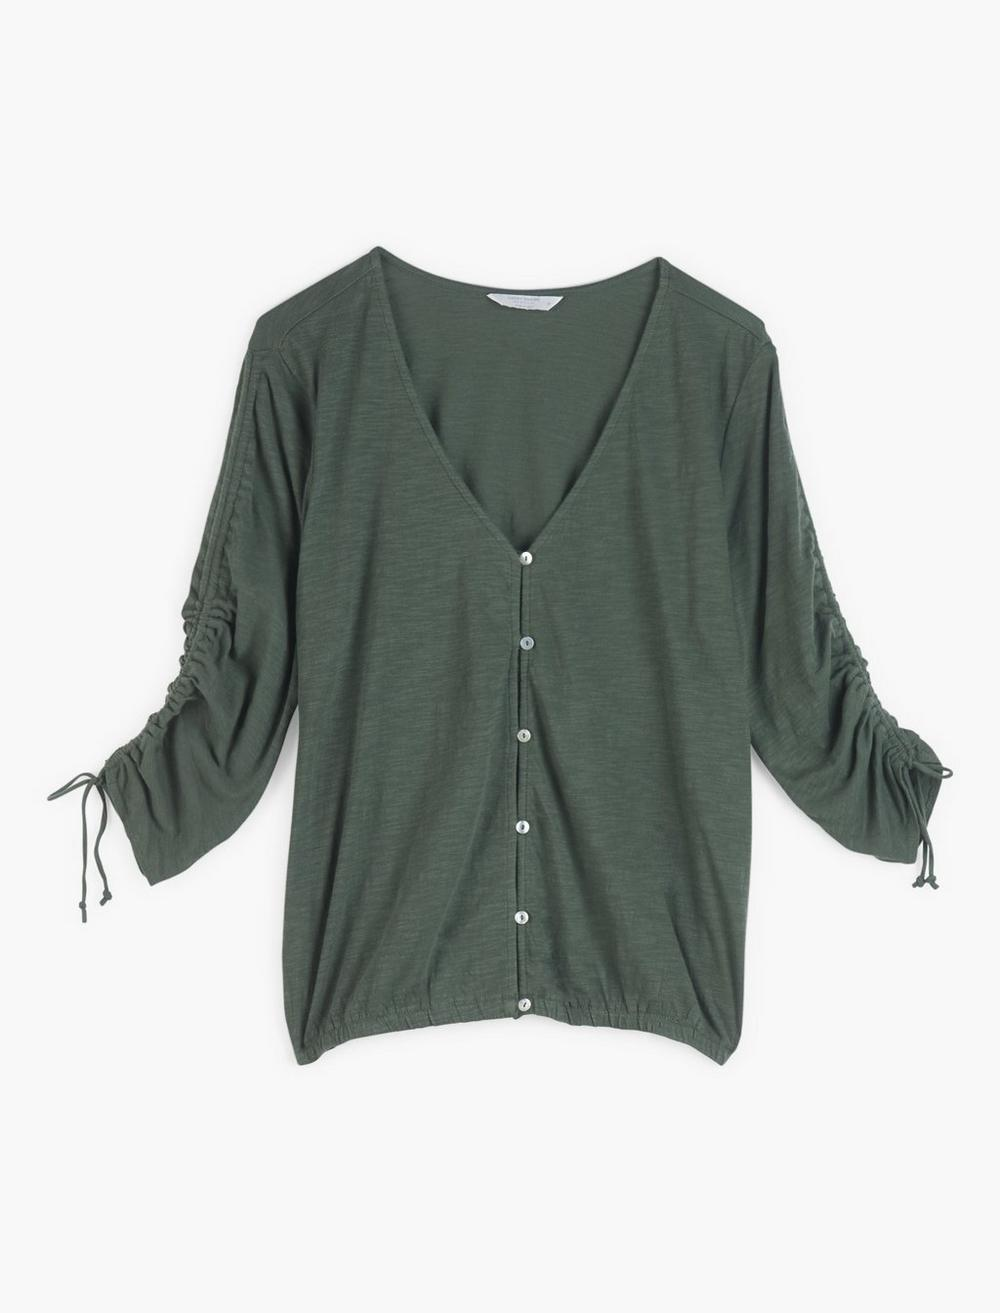 RUCHED SLEEVE TOP, image 1